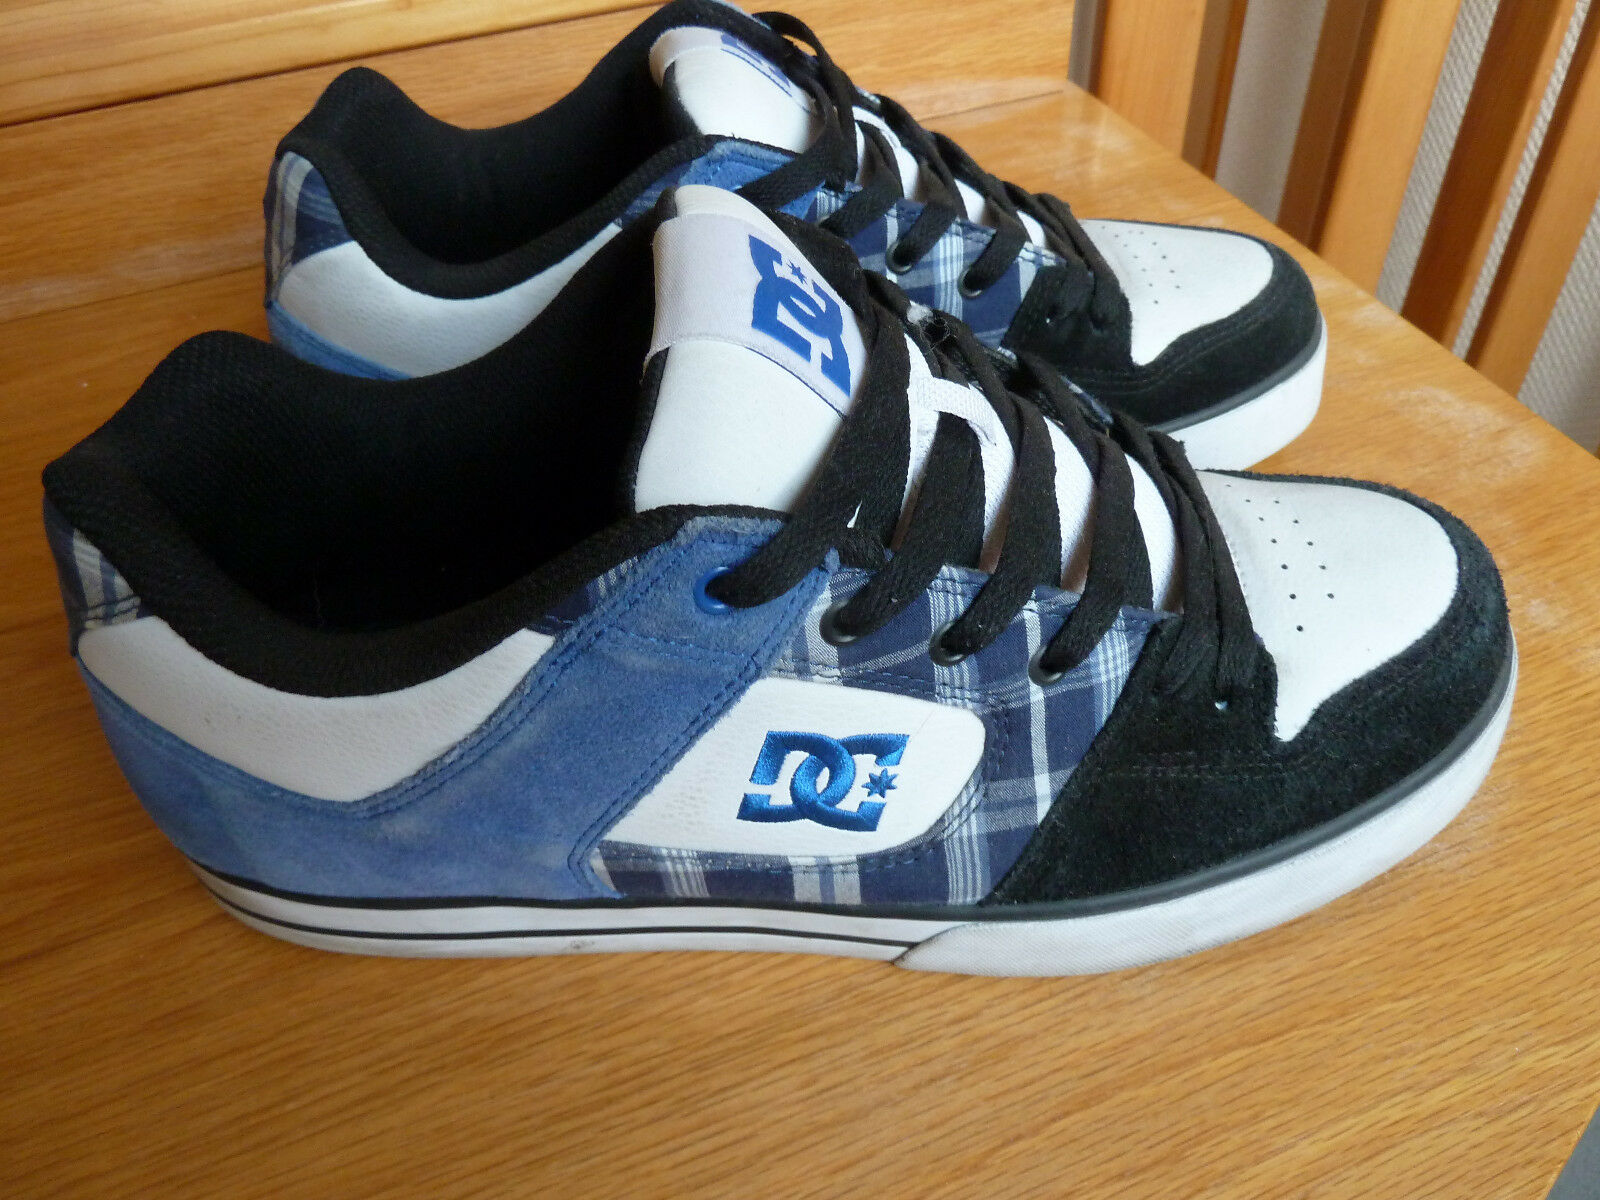 Original DC Pure XE, Gr. 47,5   US 13   31 cm - DC shoes  301722 black white navy